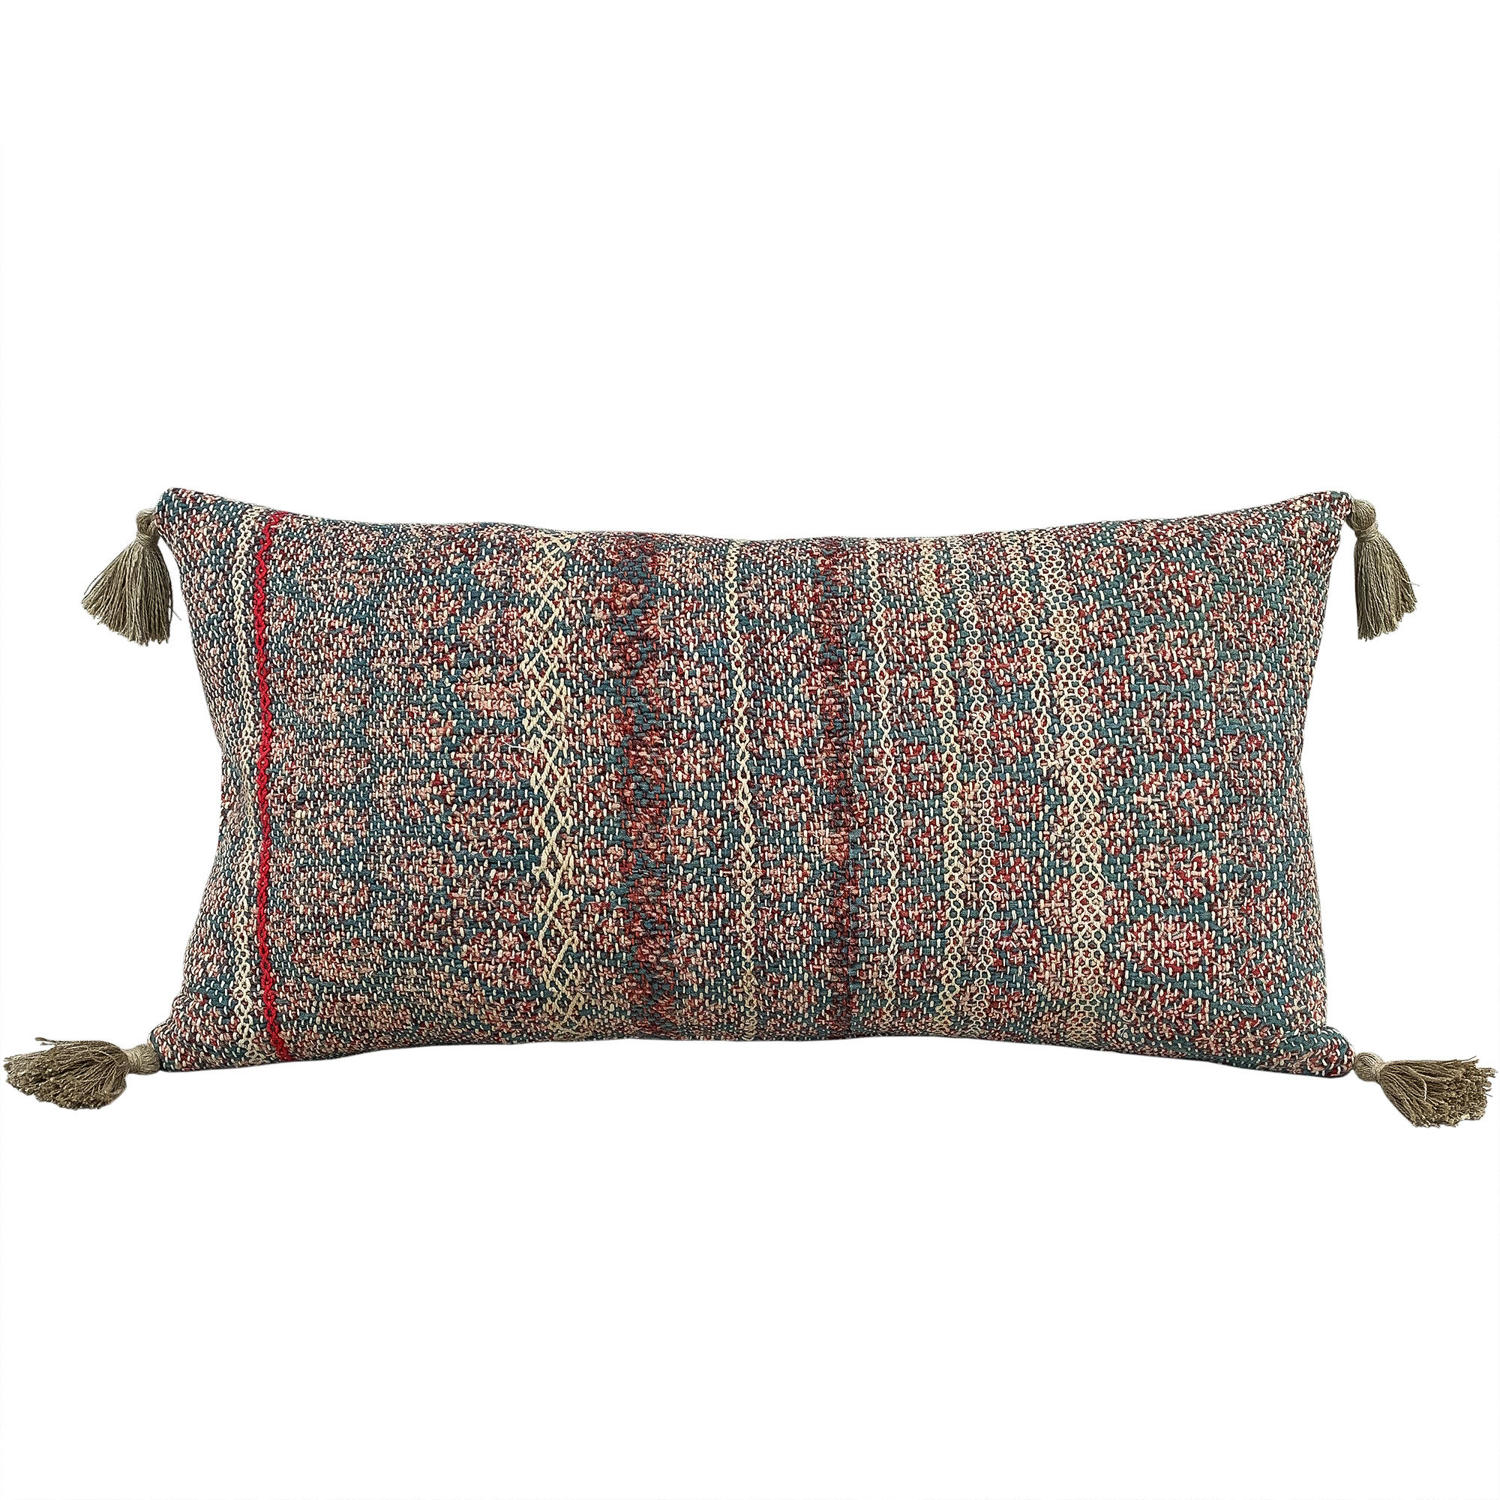 Large Banjara Cushion with Tassels